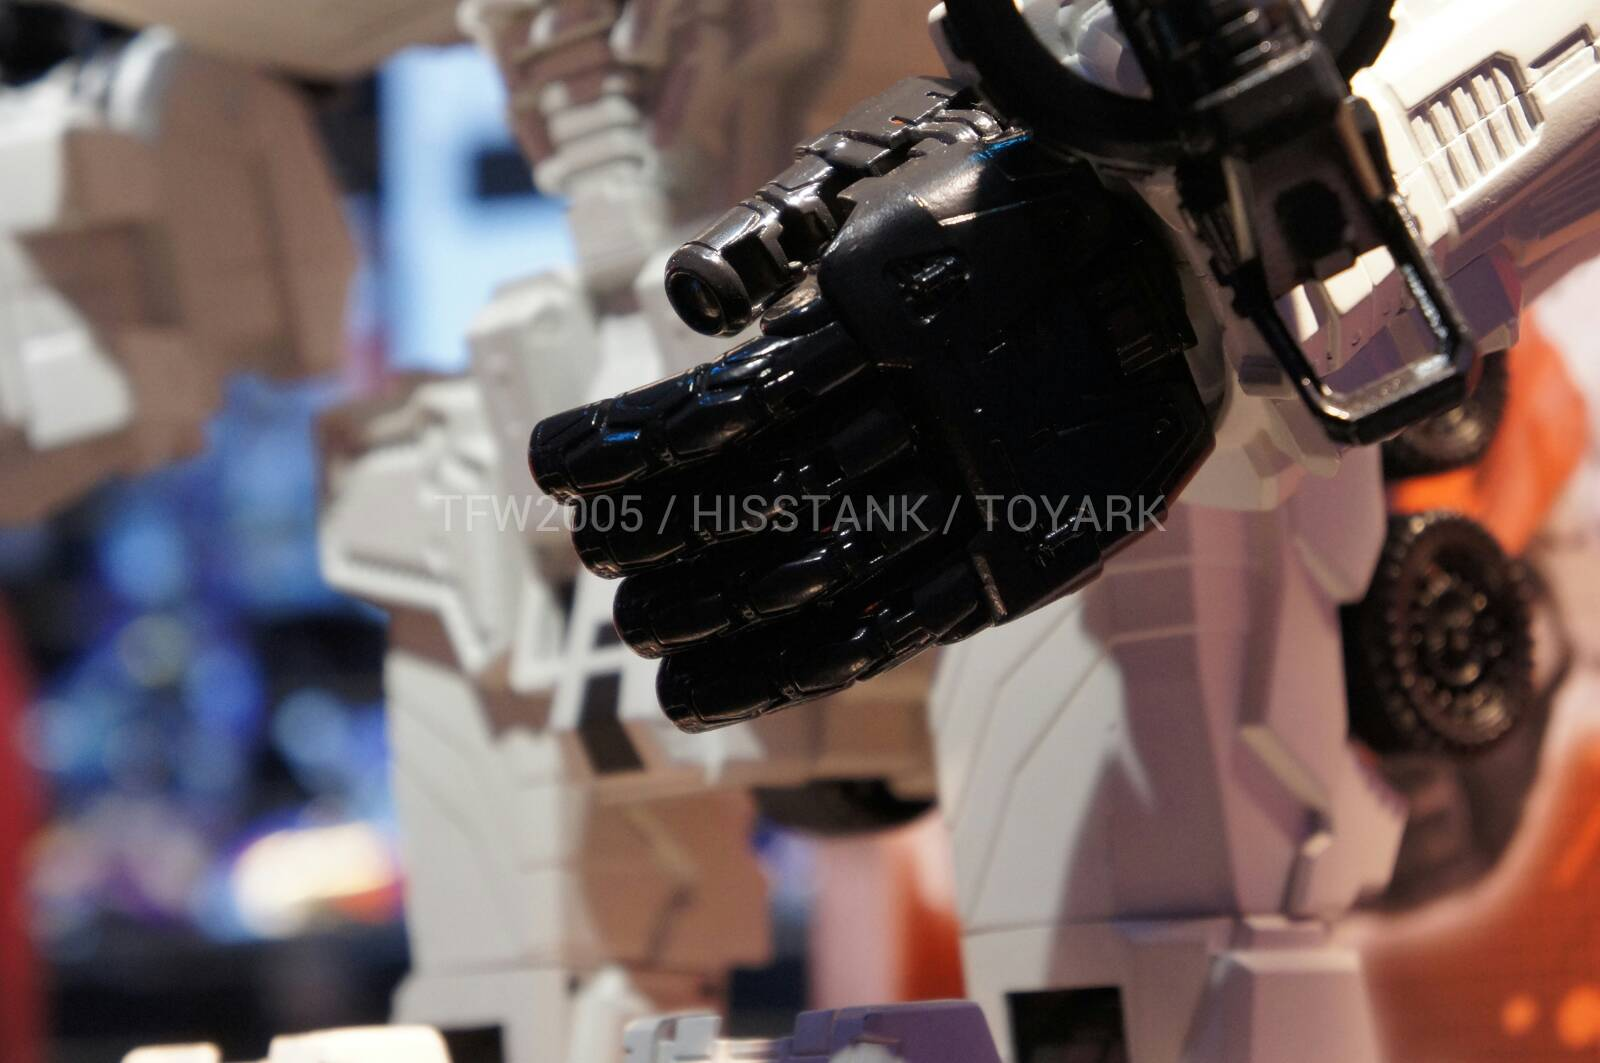 Transformers-Metroplex-Toy-Fair-2013-009